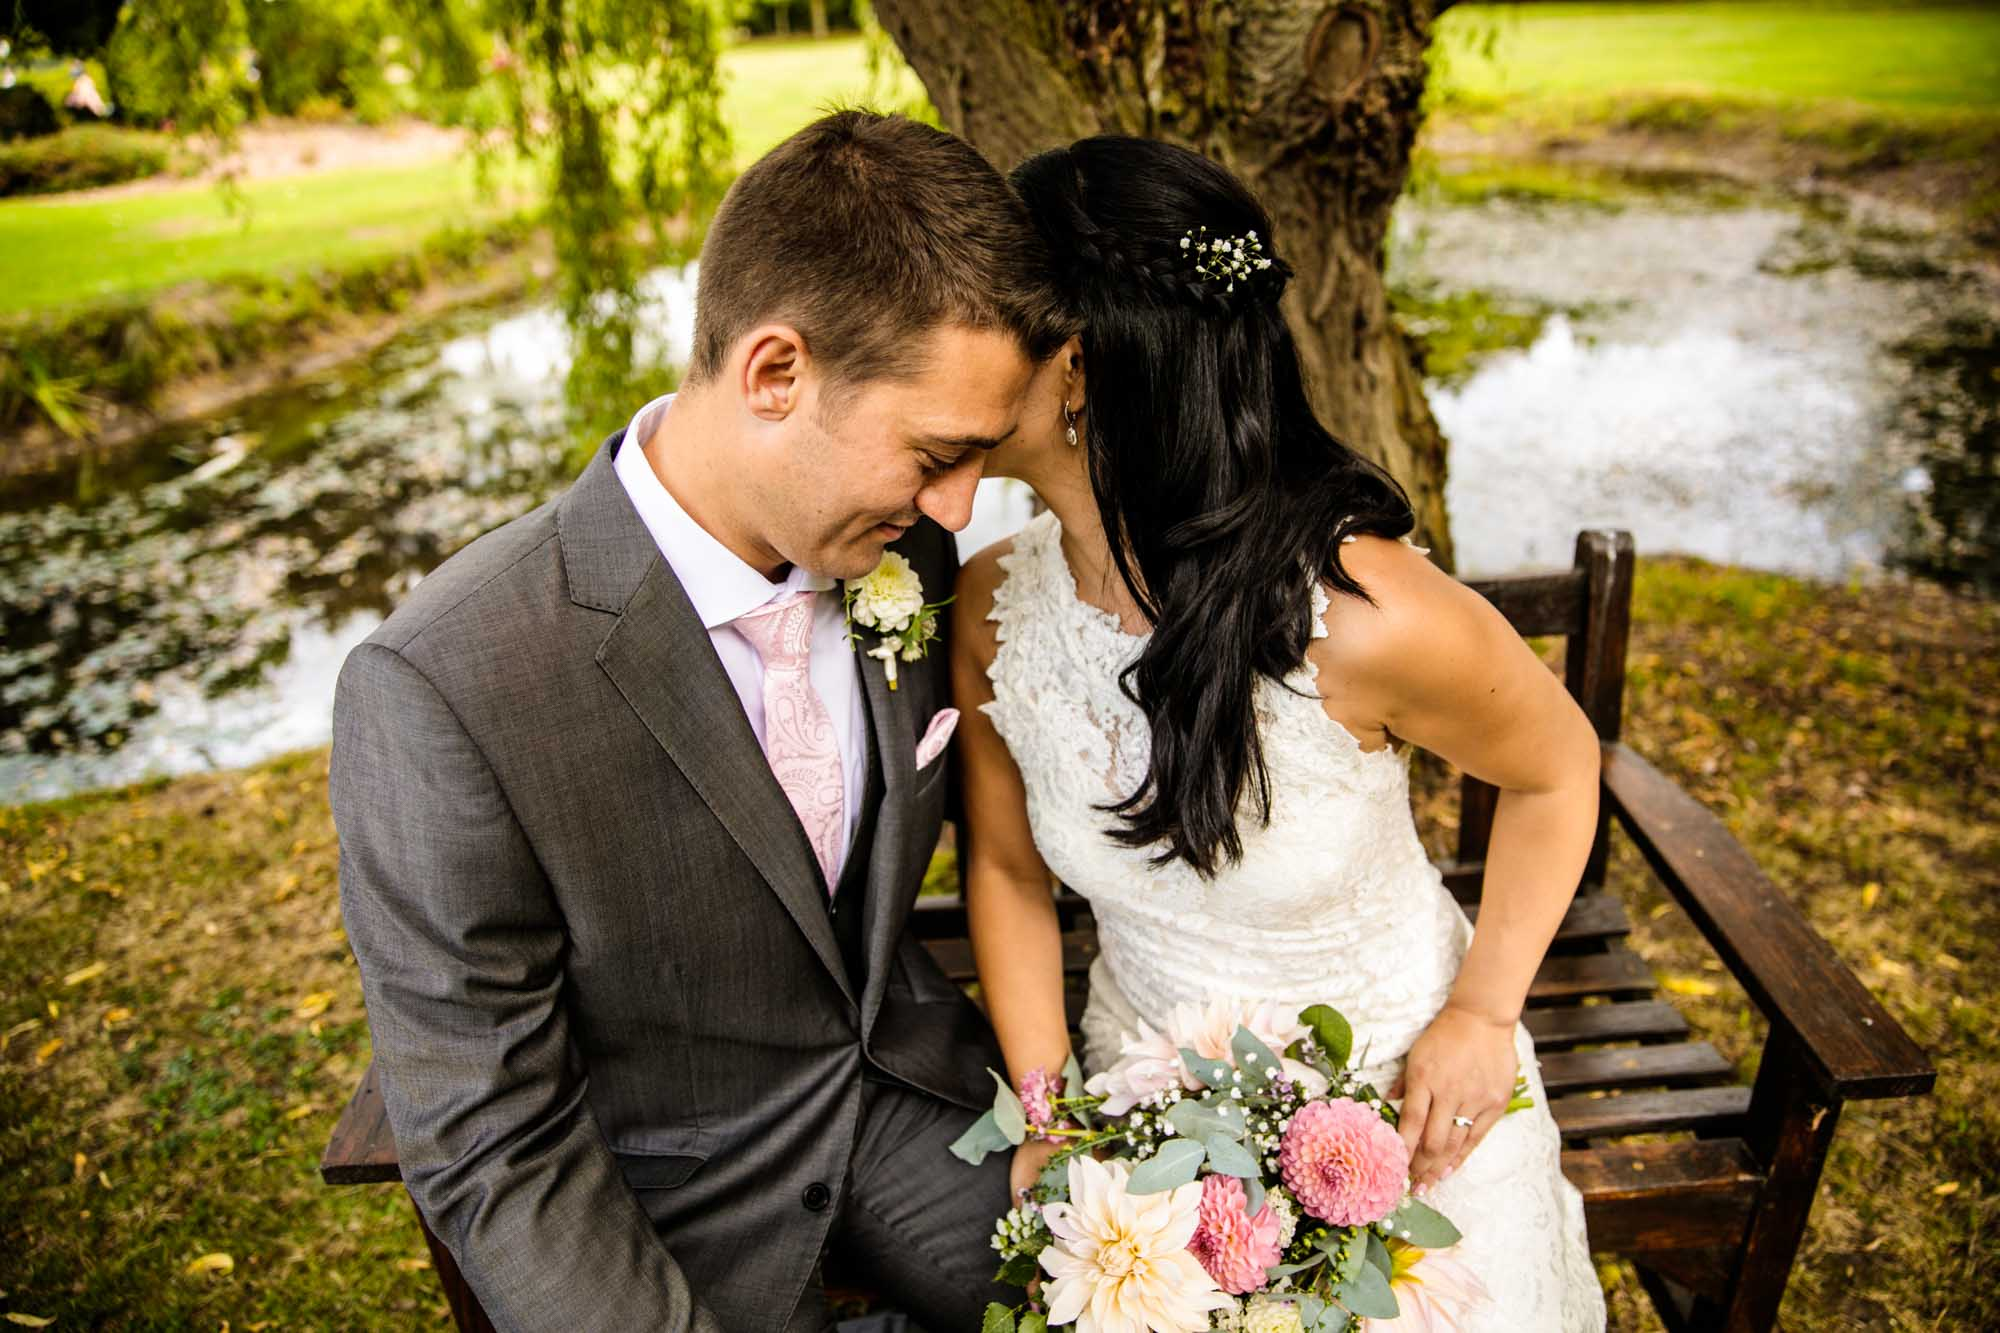 Colourful Wedding Photographs Manley Mere